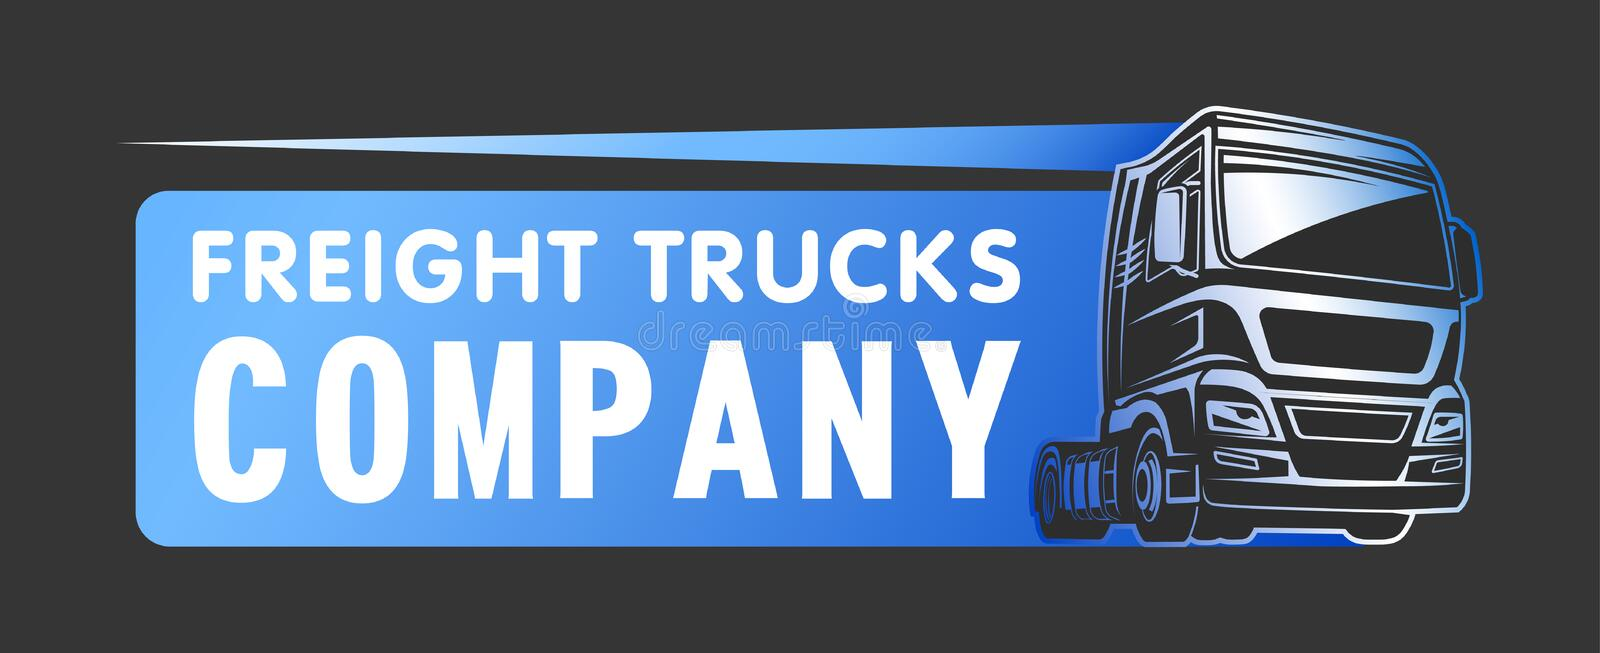 Truck cargo freight company logo template royalty free illustration